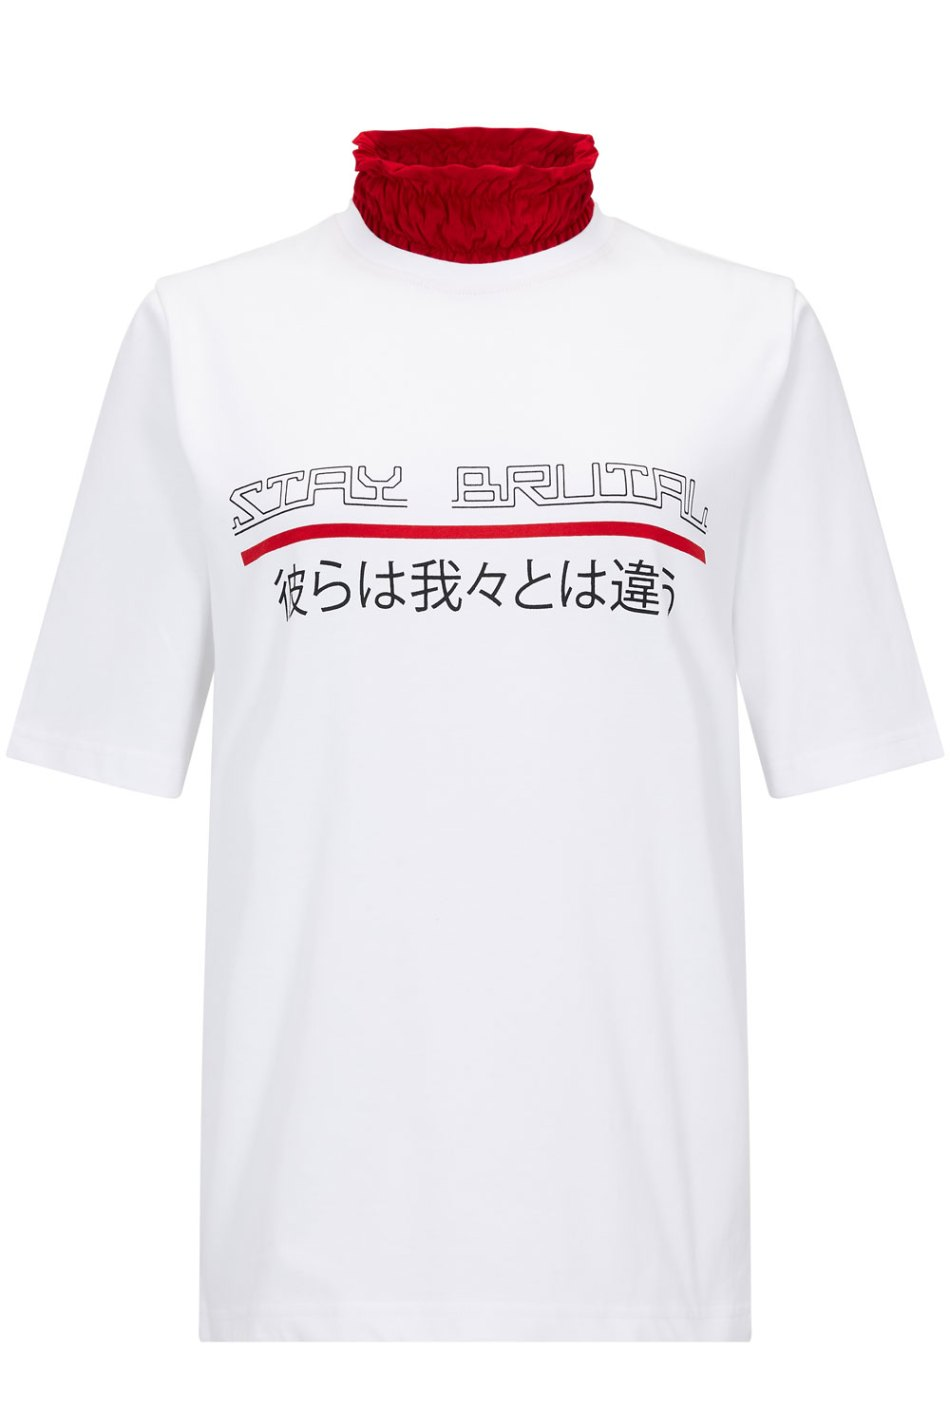 "White cotton t-shirt with stay brutal printed slogan and Japanese text reading ""They don't make them like us anymore"". A statement empowering people to stay true to what they believe in."